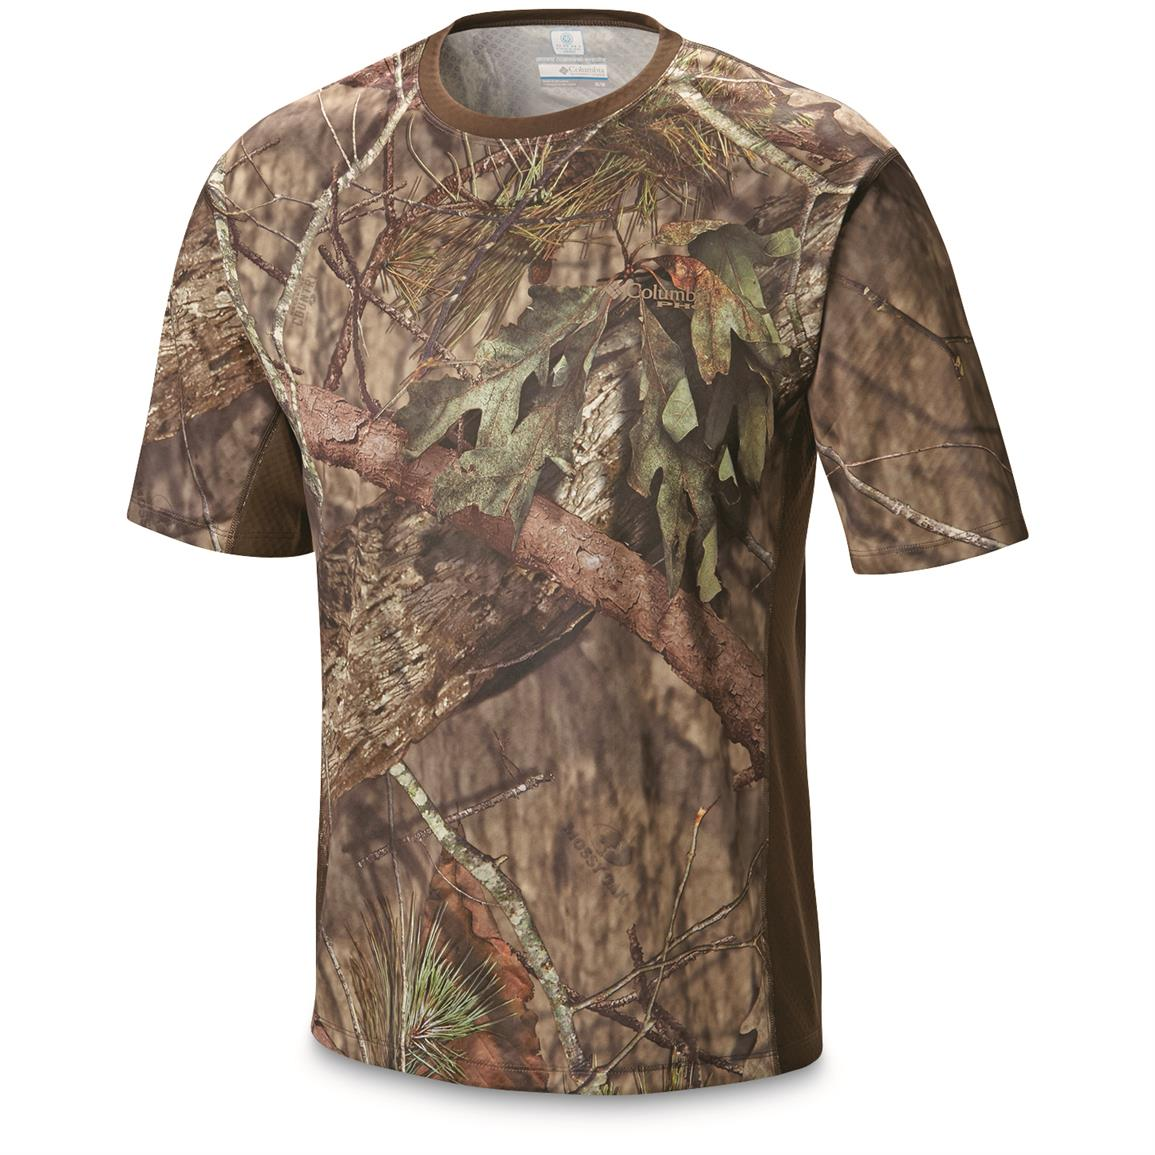 Columbia Men's Stealth Shot lll Zero Short Sleeve Shirt, Mossy Oak Break-Up Country